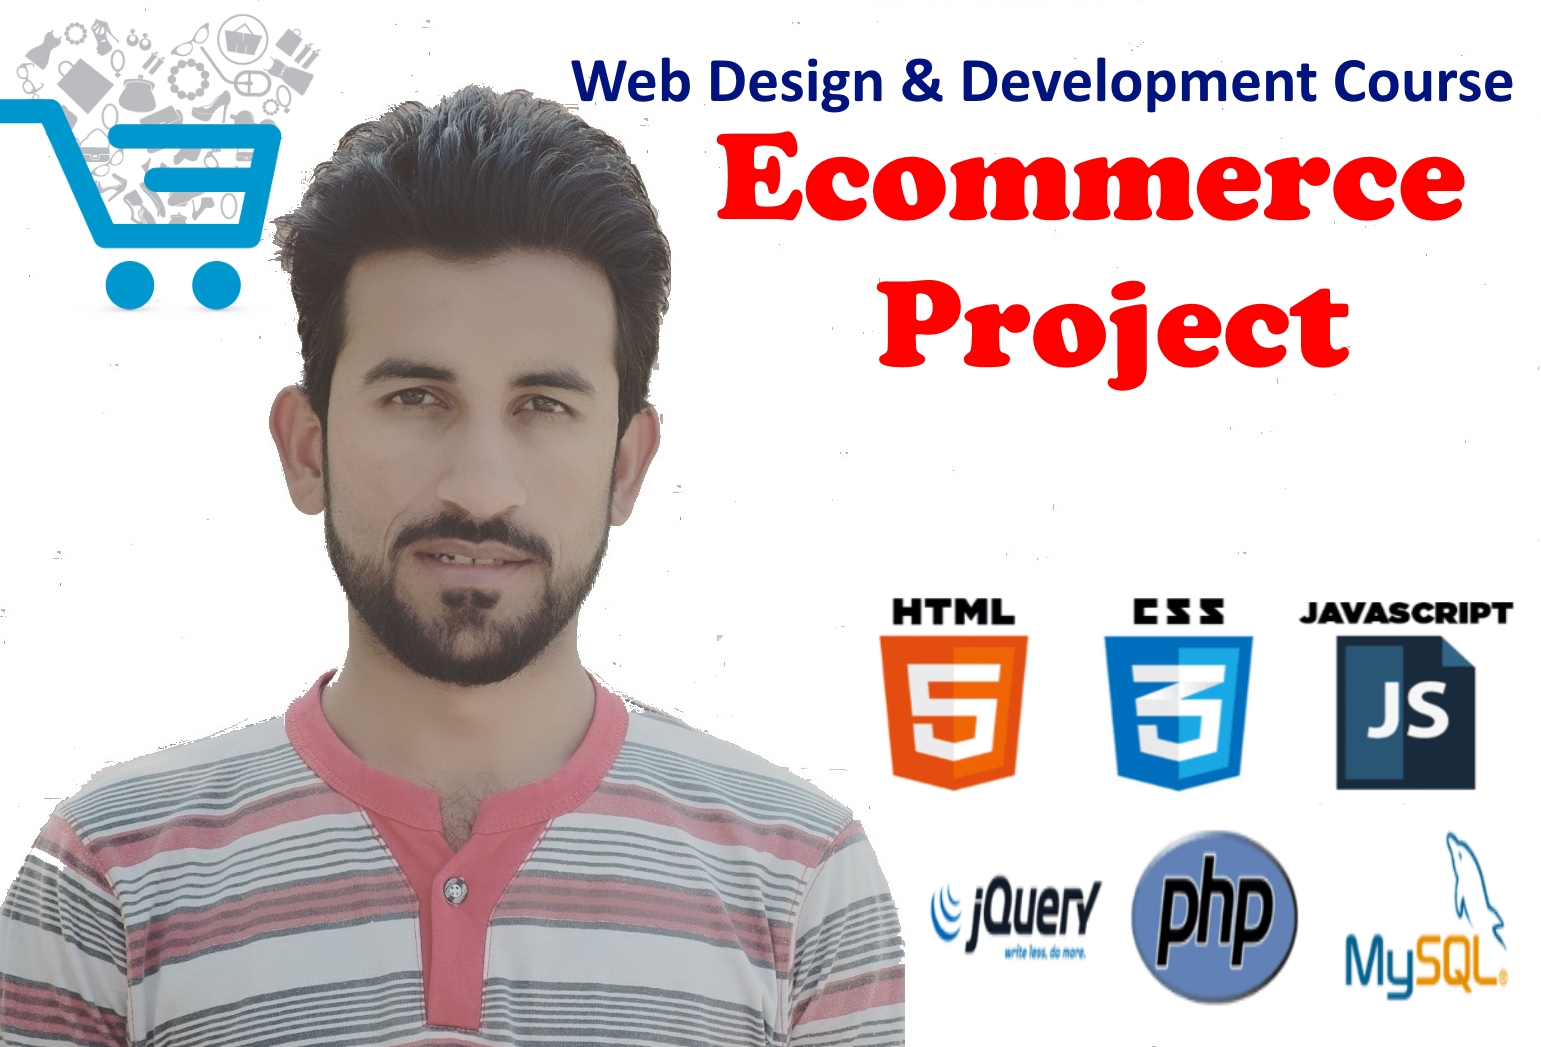 Core Web Design & Development – Ecommerce Project in PHP